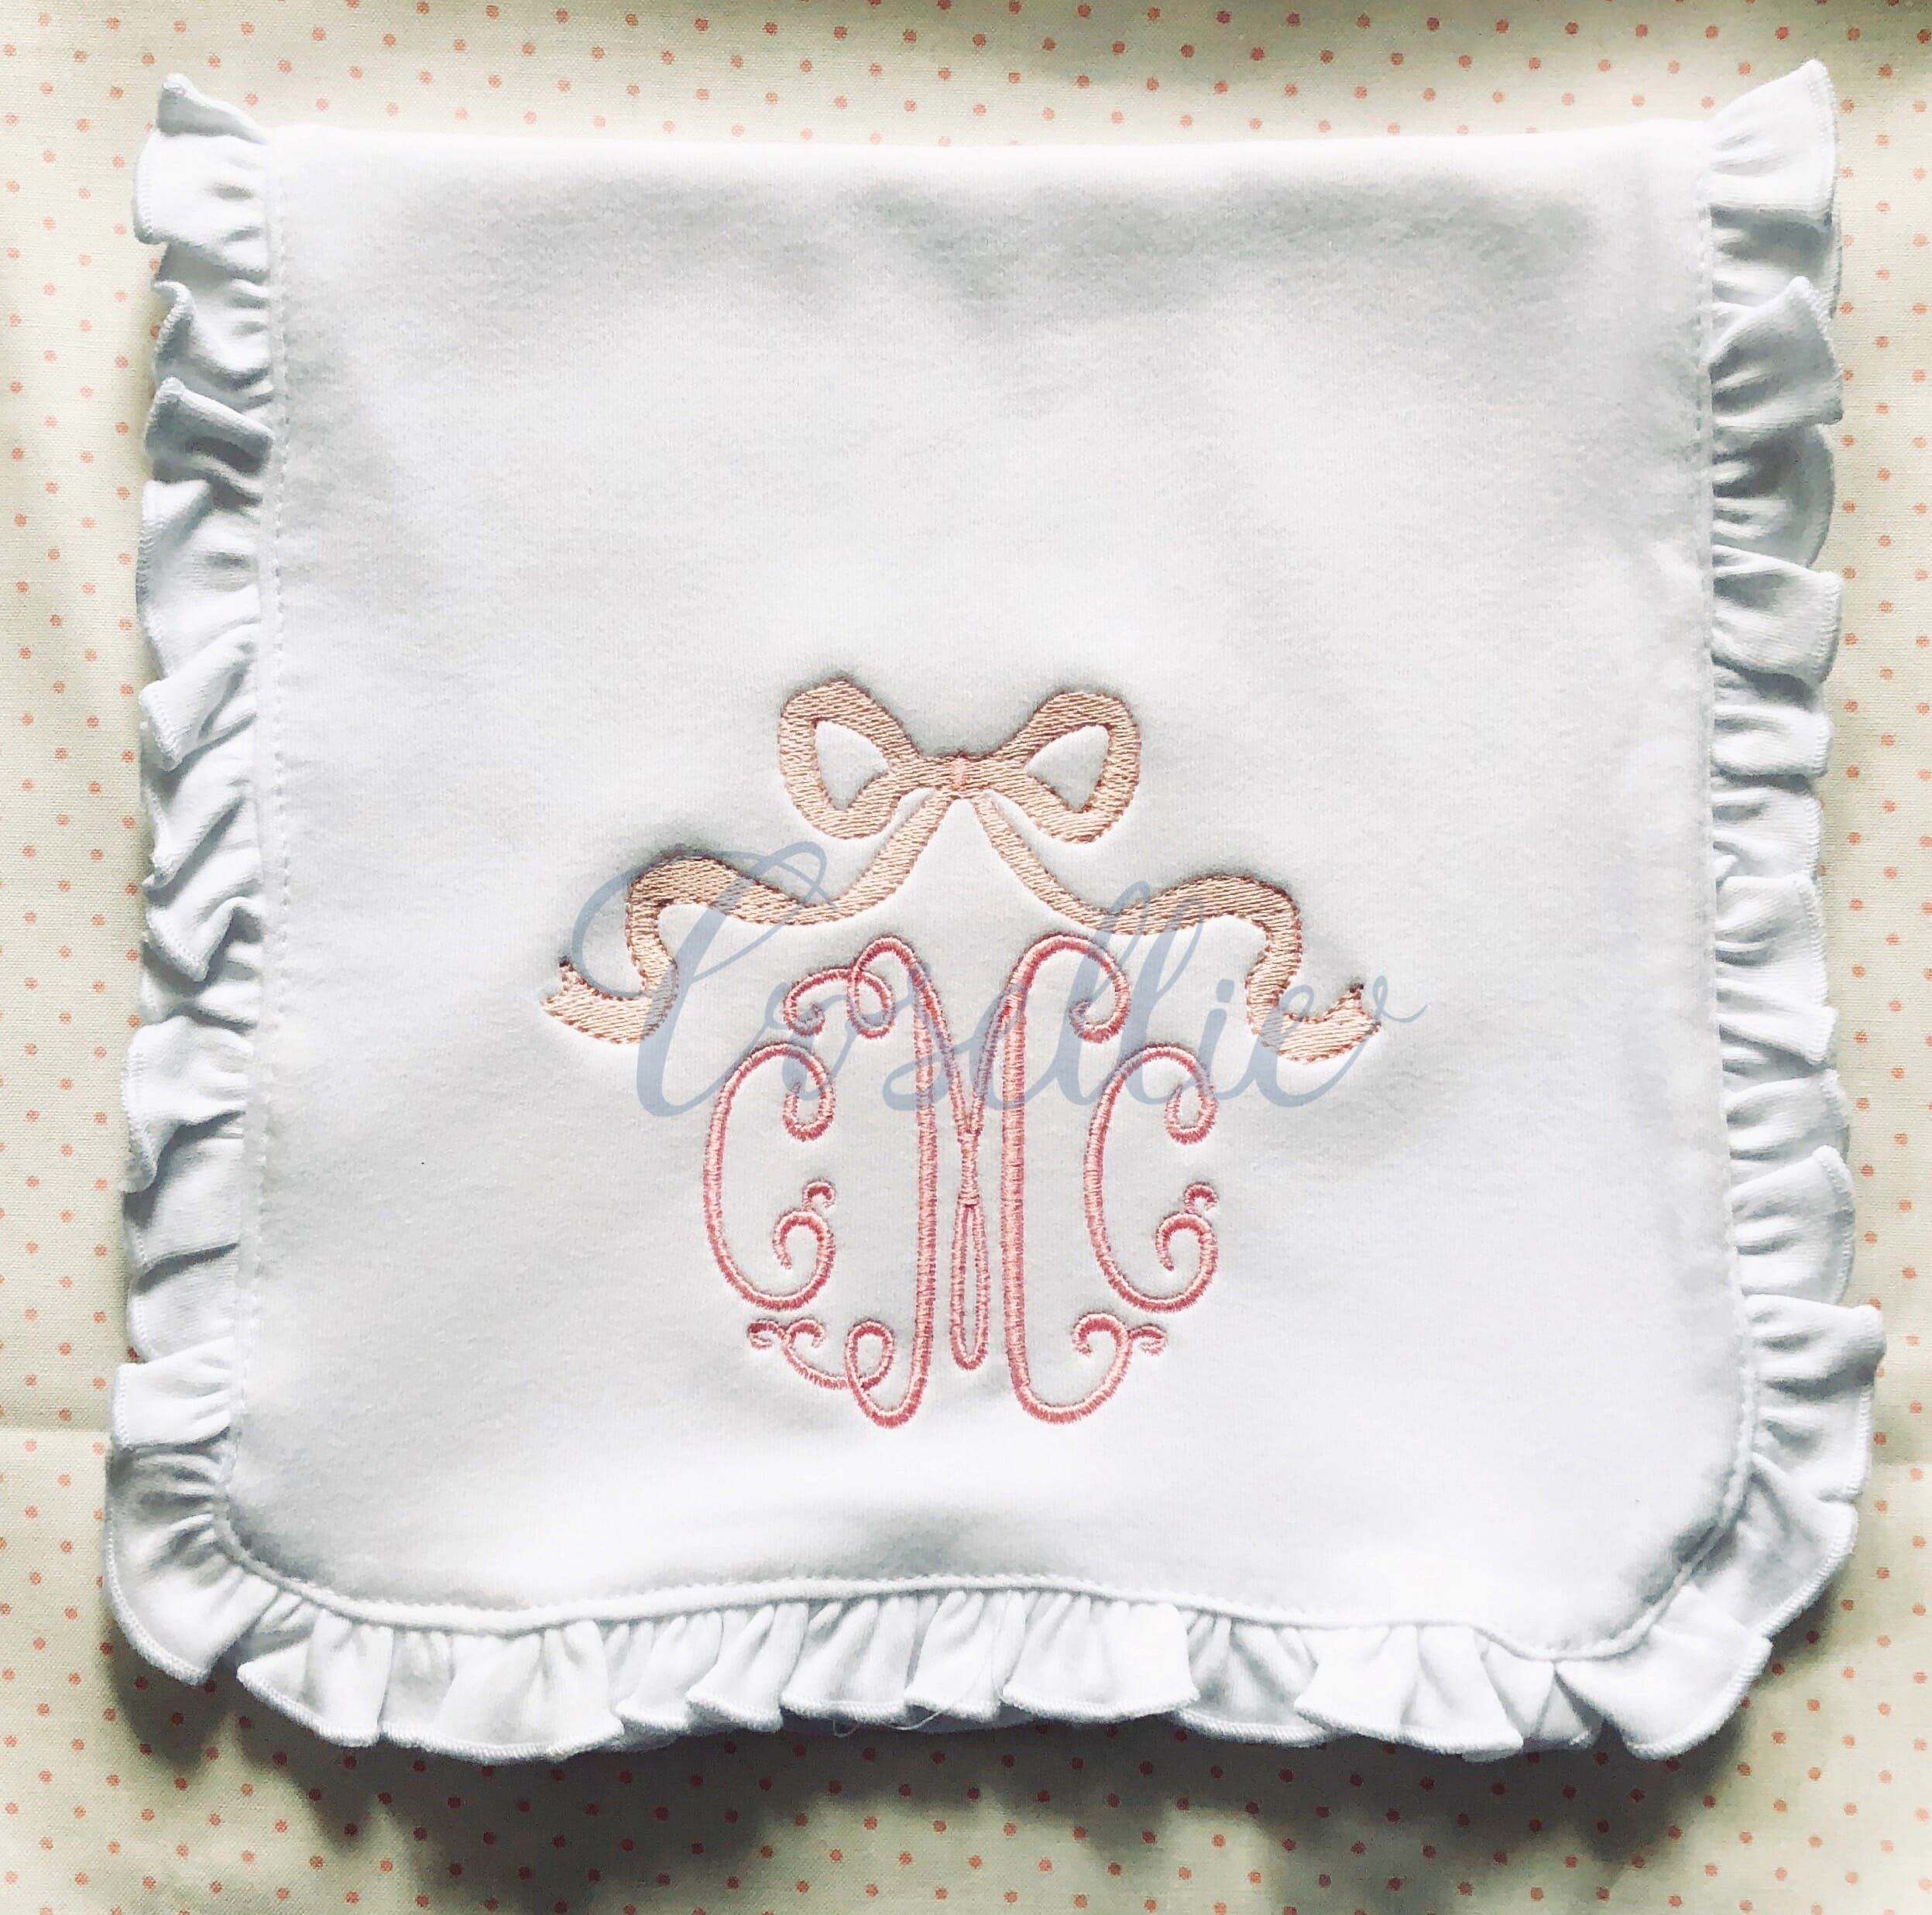 Simple Bow Embroidery Design Embroidery Design Cosellie